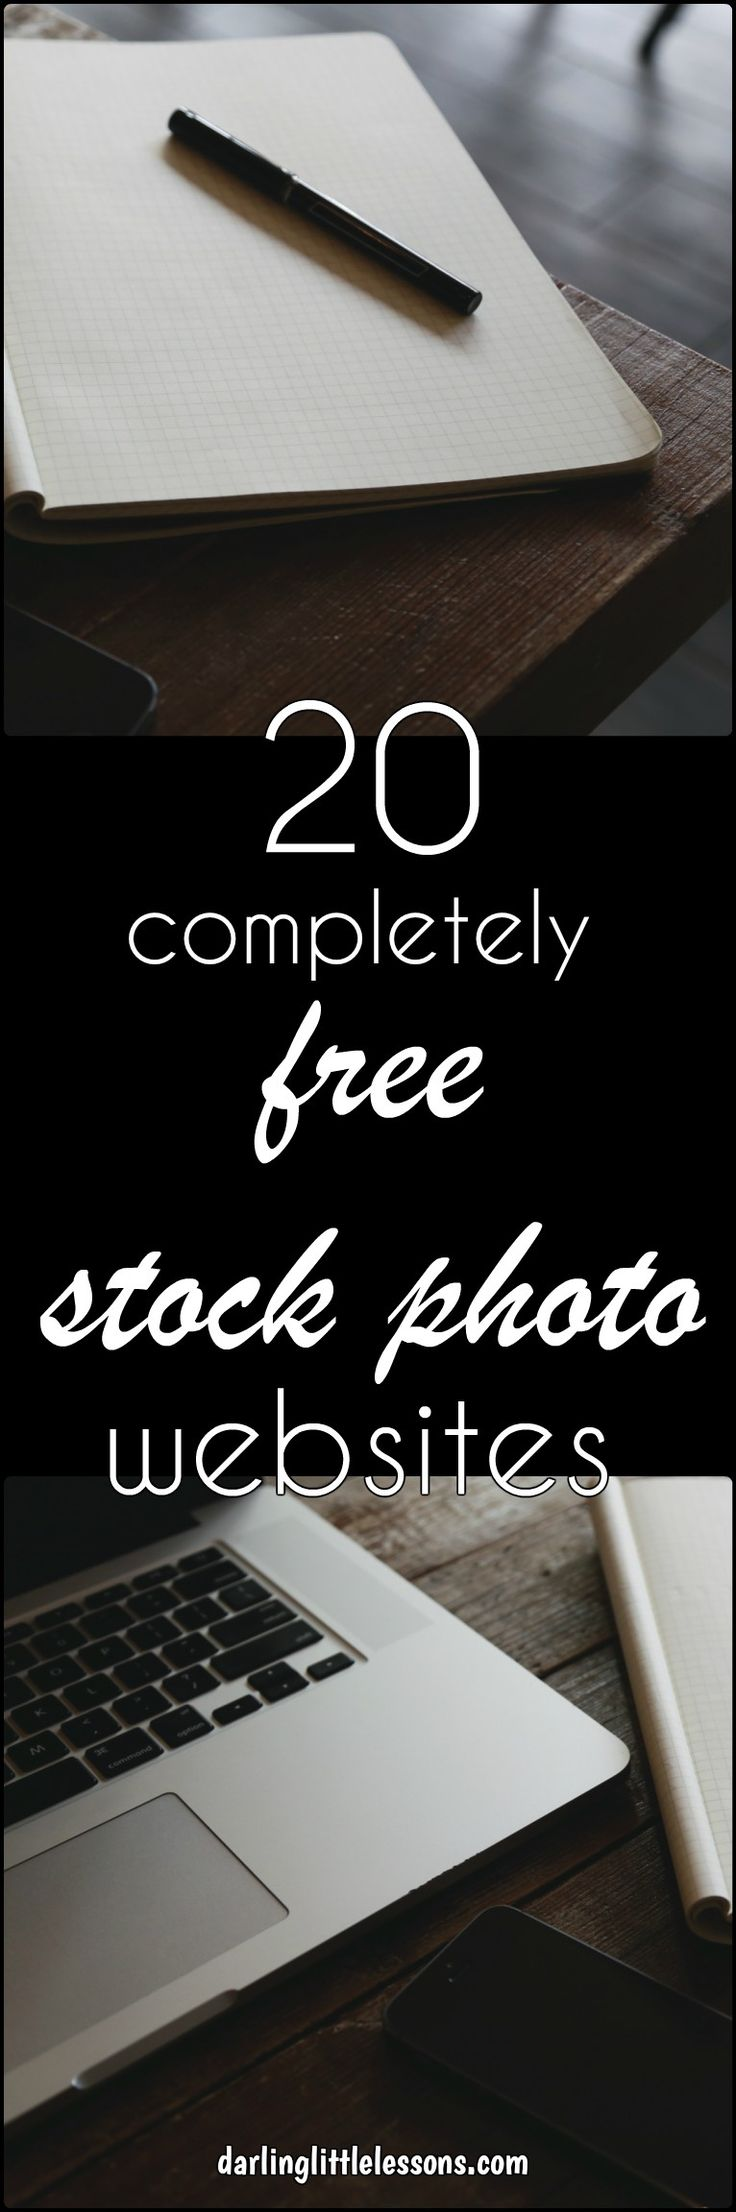 This is a great list of stock photo websites! All of them are completely free! Saving this for the next time I need a good stock photo. Perfect for a blogger.